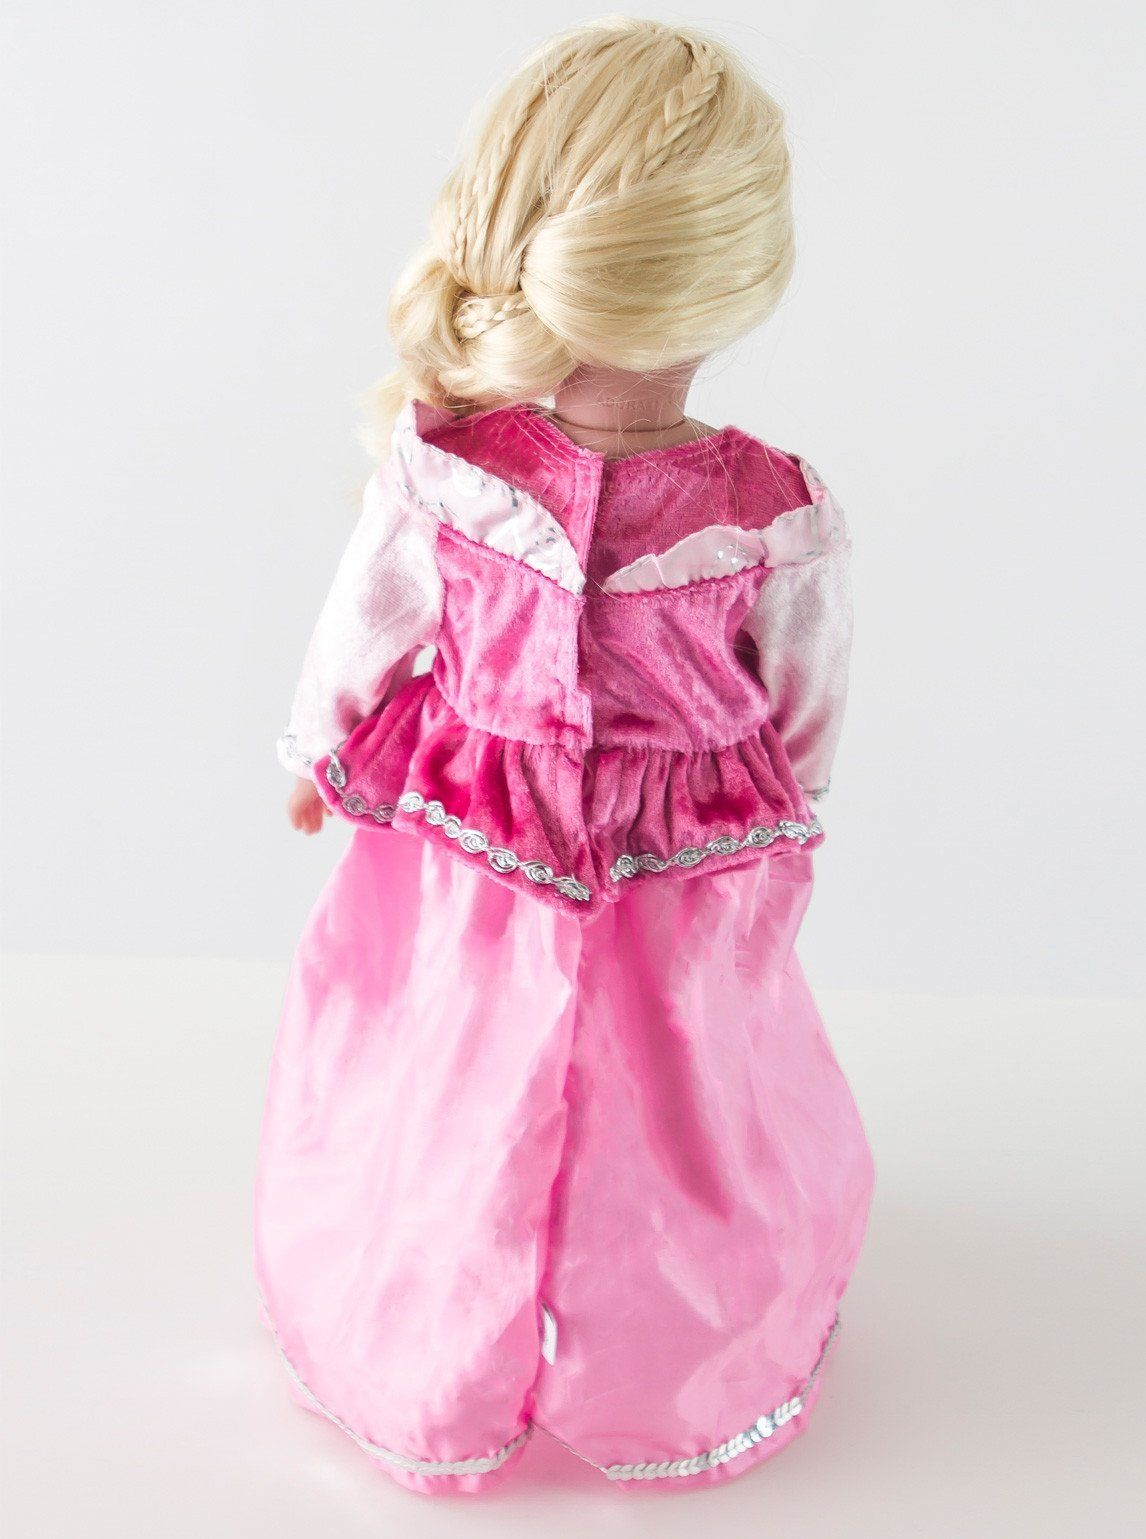 Doll Dresses & Accessories - Doll Dress Sleeping Beauty